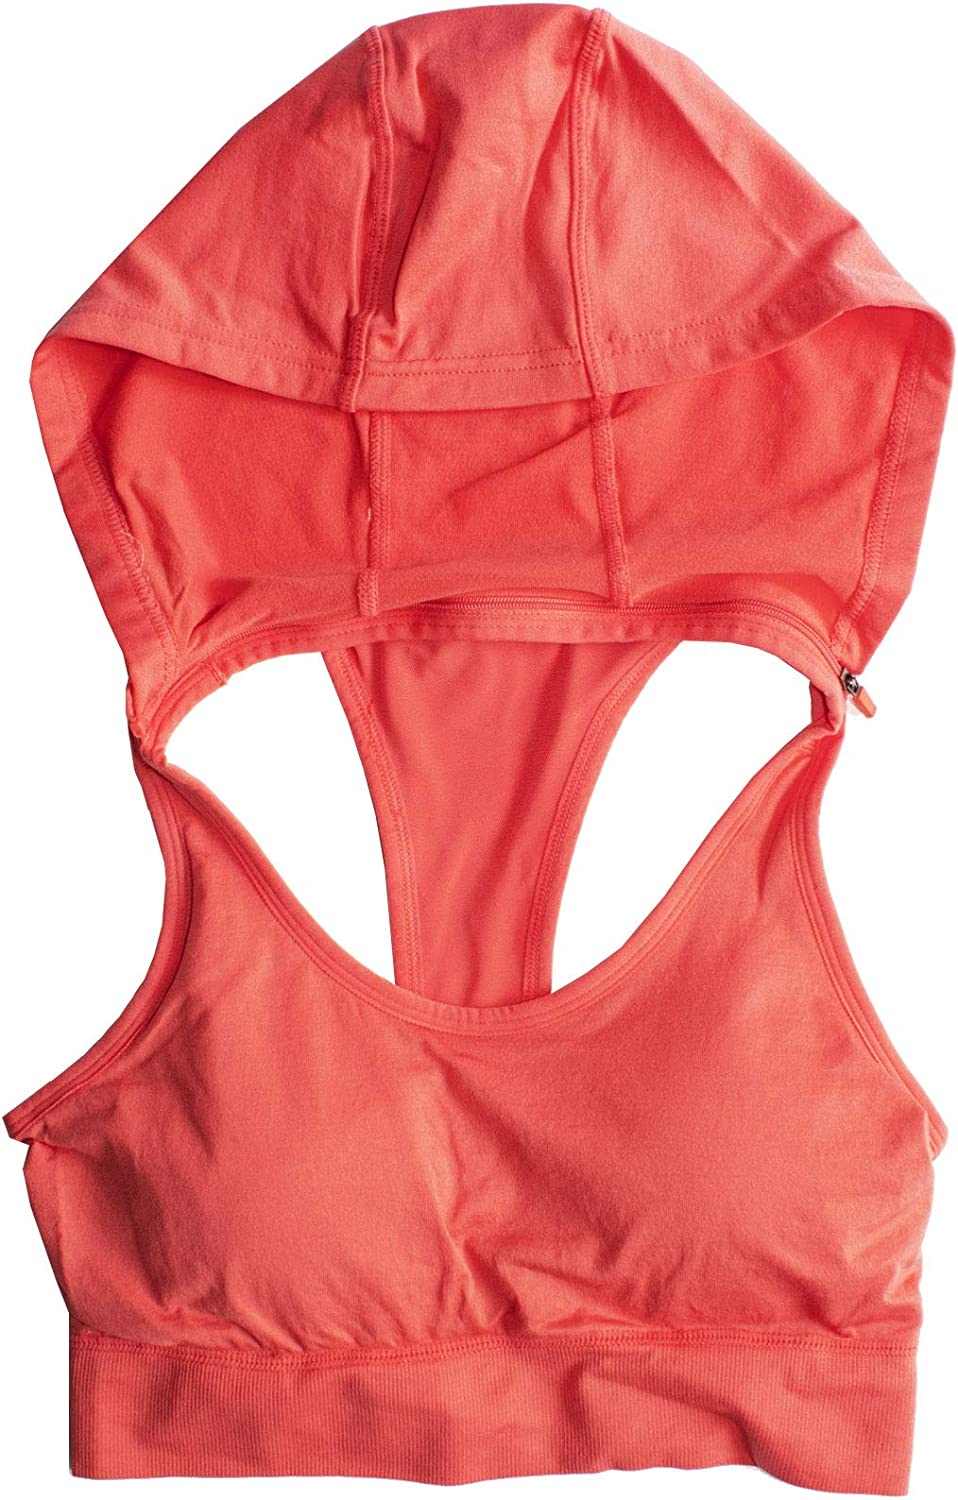 Runner Island Womens Coral Pink Sports Bra Hoodie with Strappy Open Back Racerback High Impact Running Workout